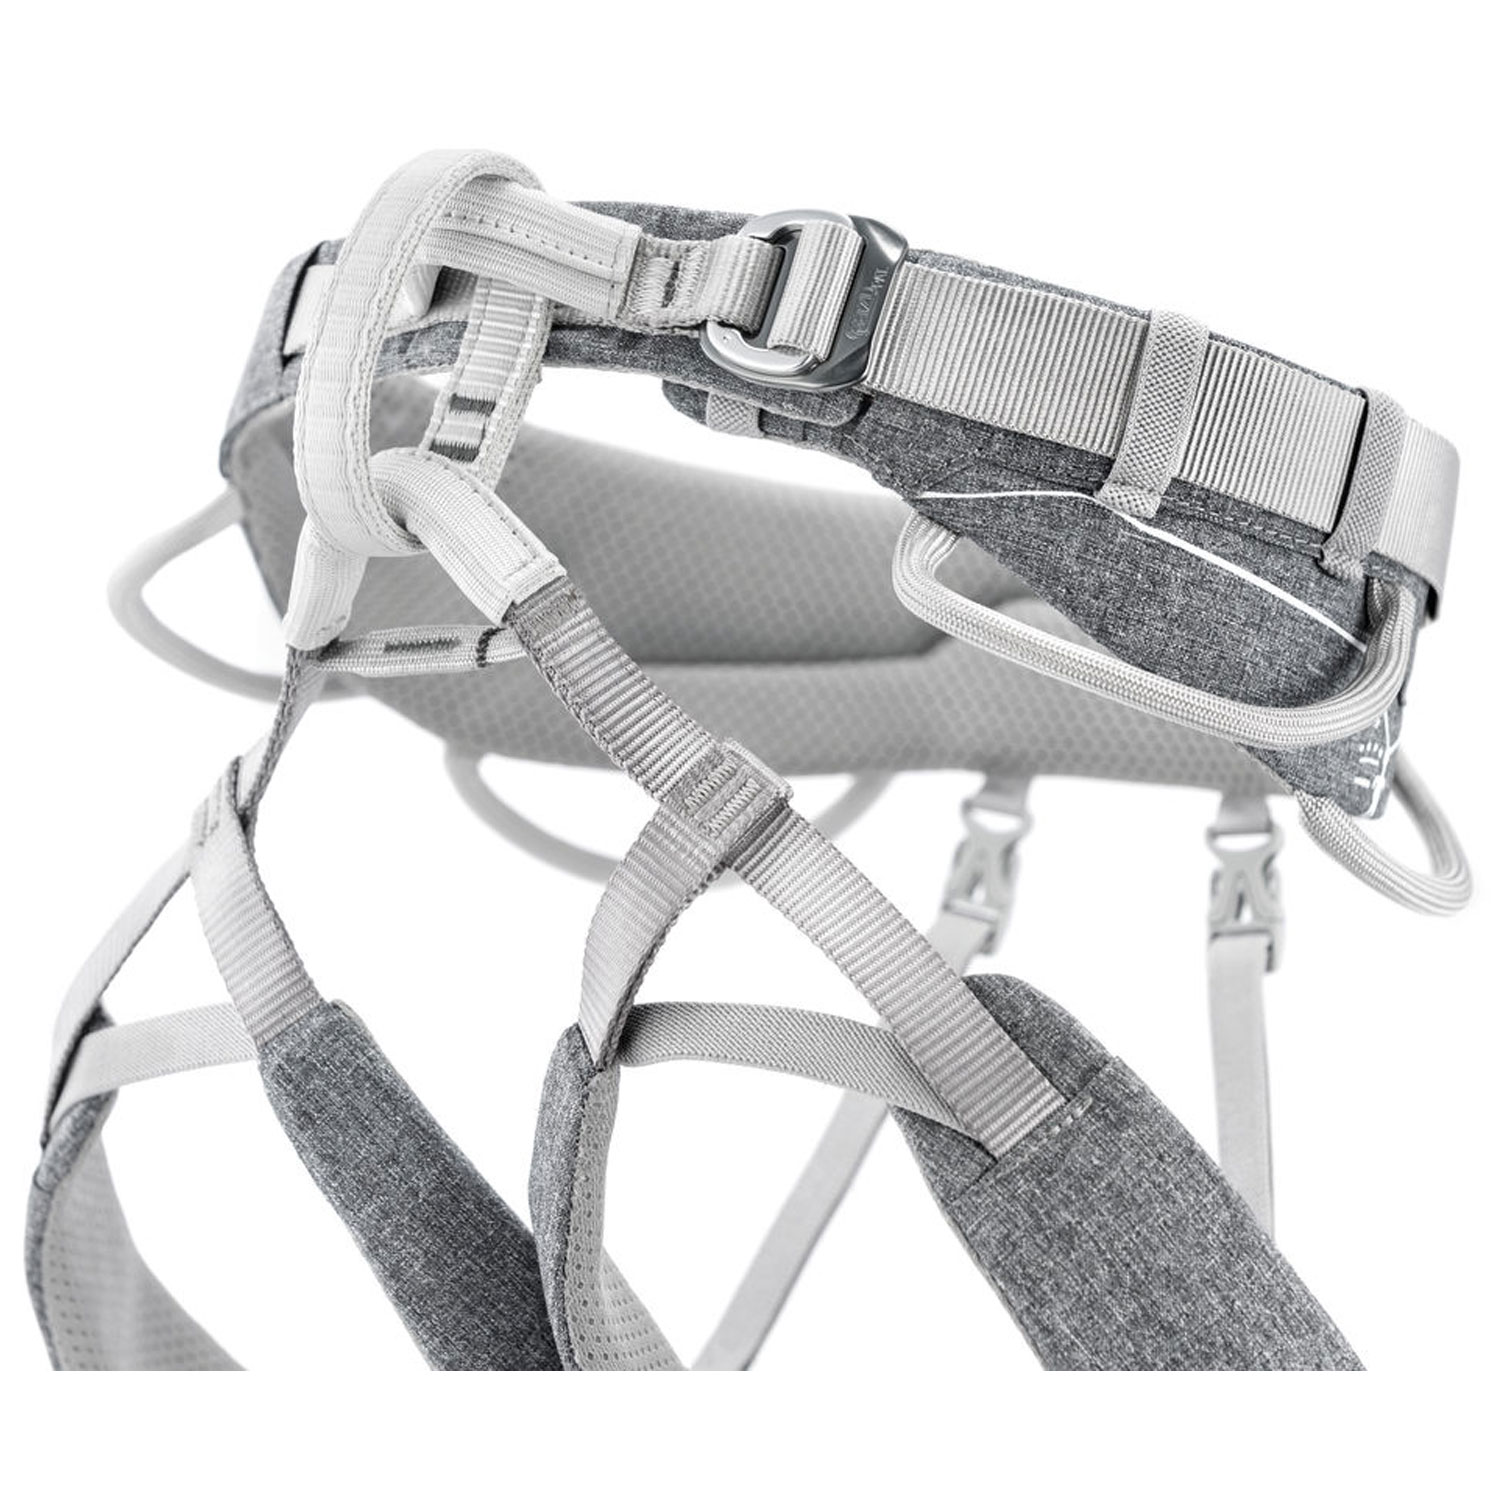 Petzl-Men-039-s-Sama-Rock-Climbing-Harness thumbnail 3